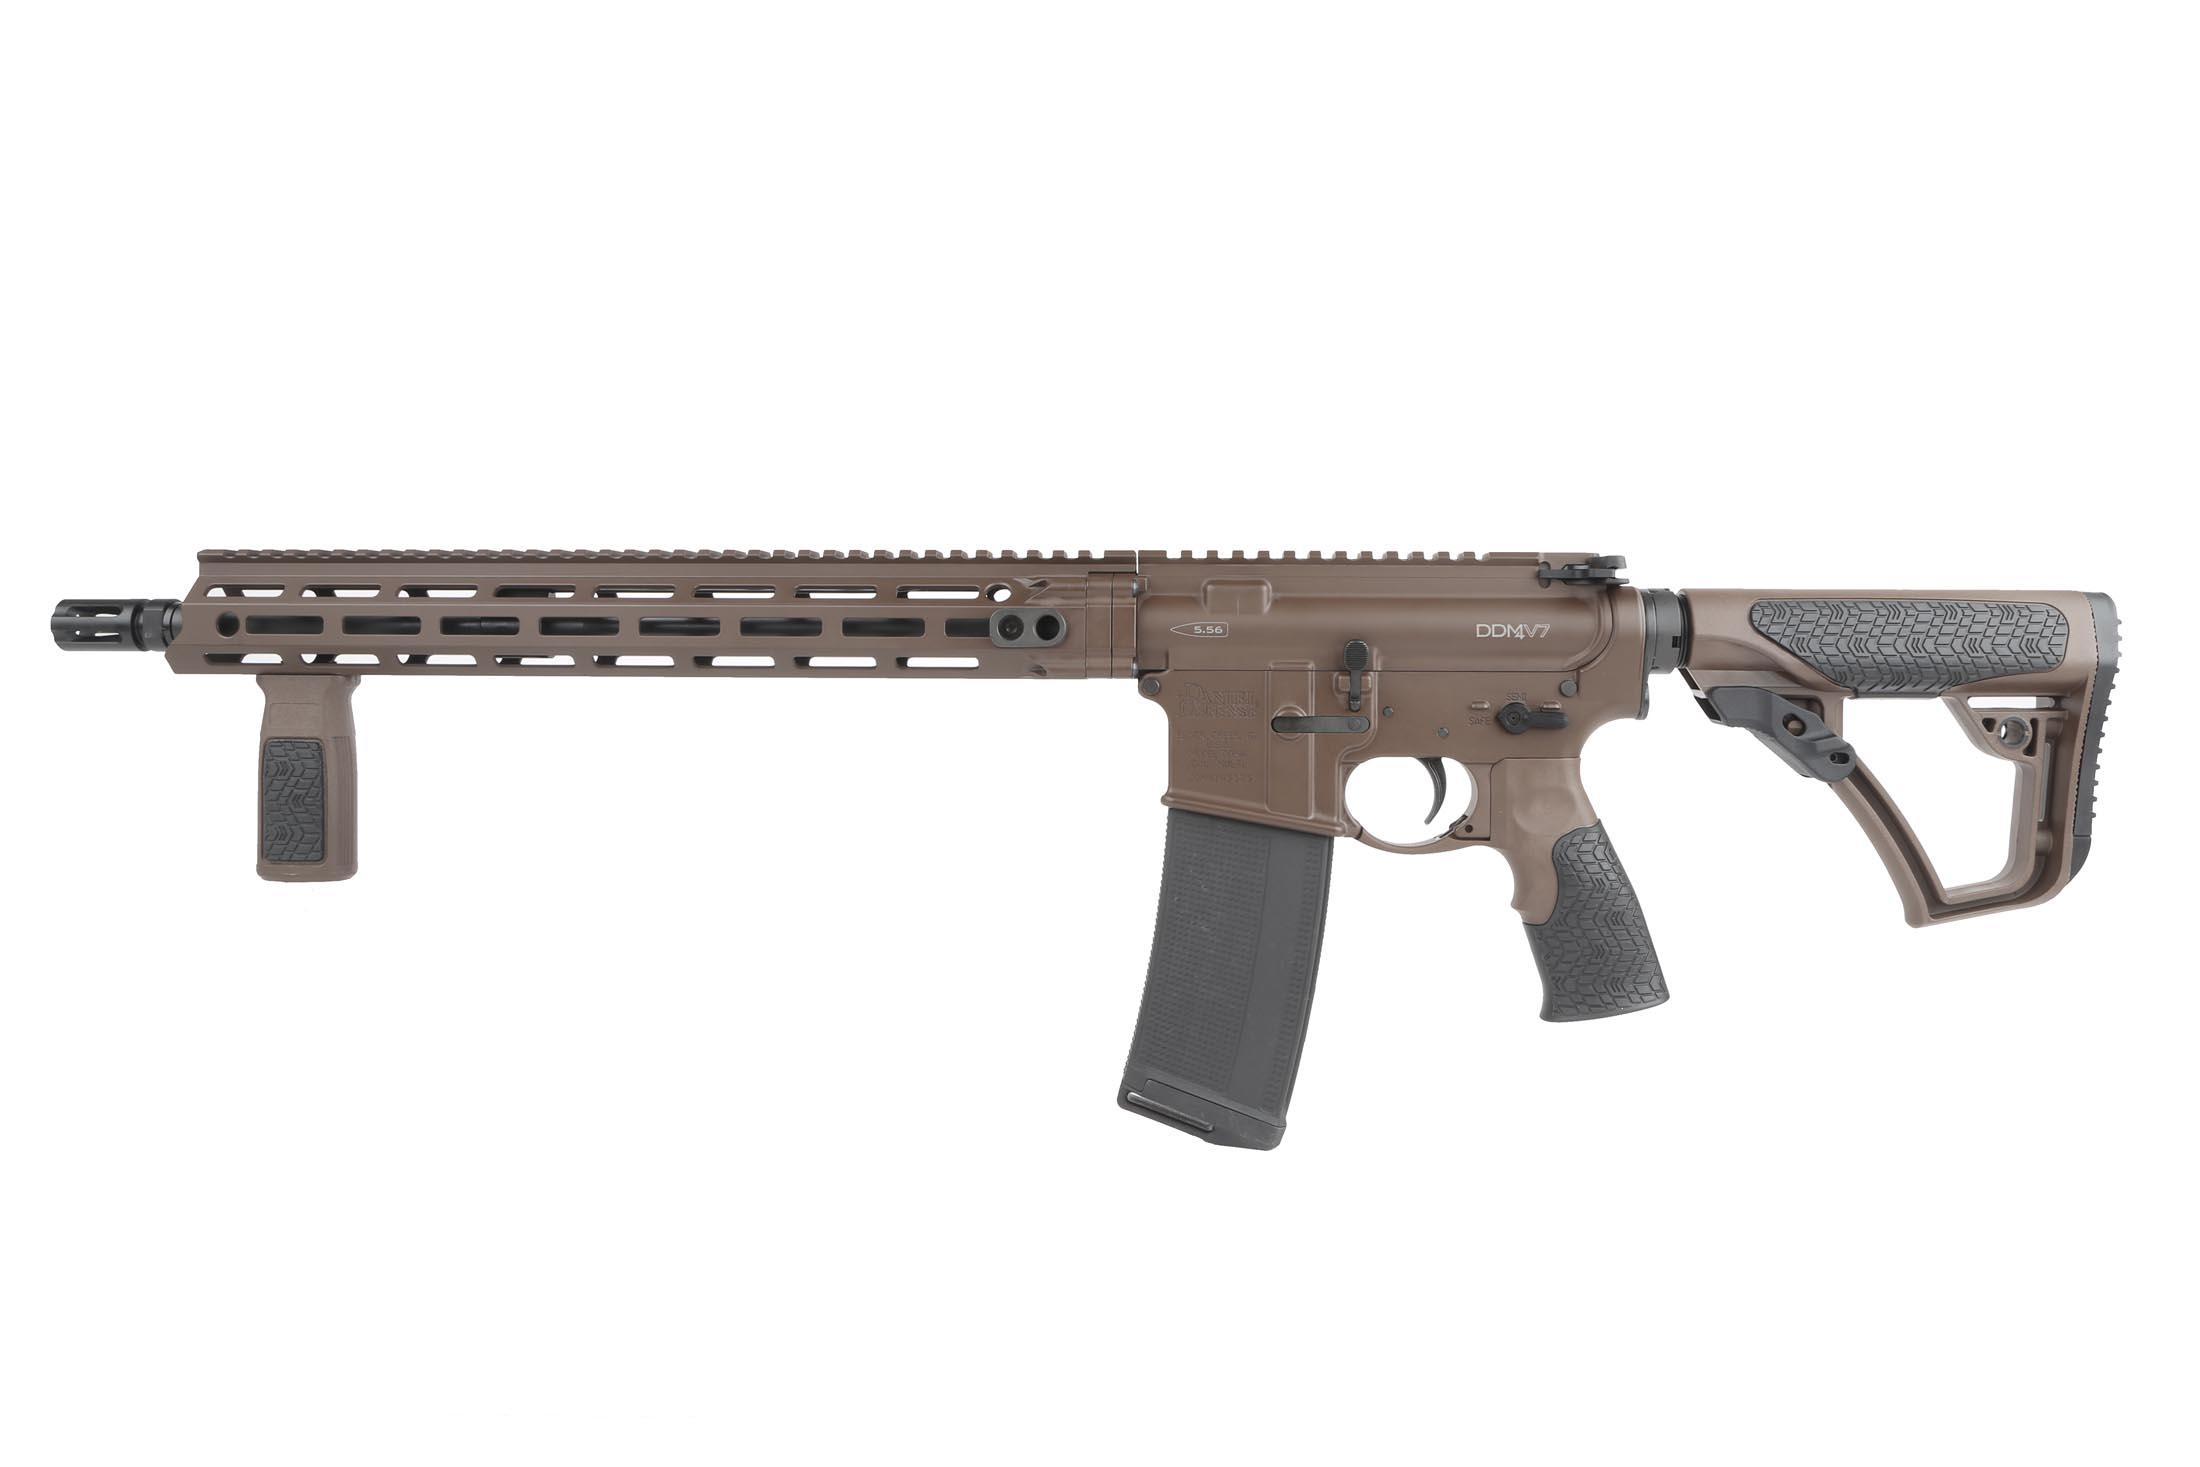 The Daniel Defense DDM4 for sale comes with a vertical fore grip and 30 round magazine